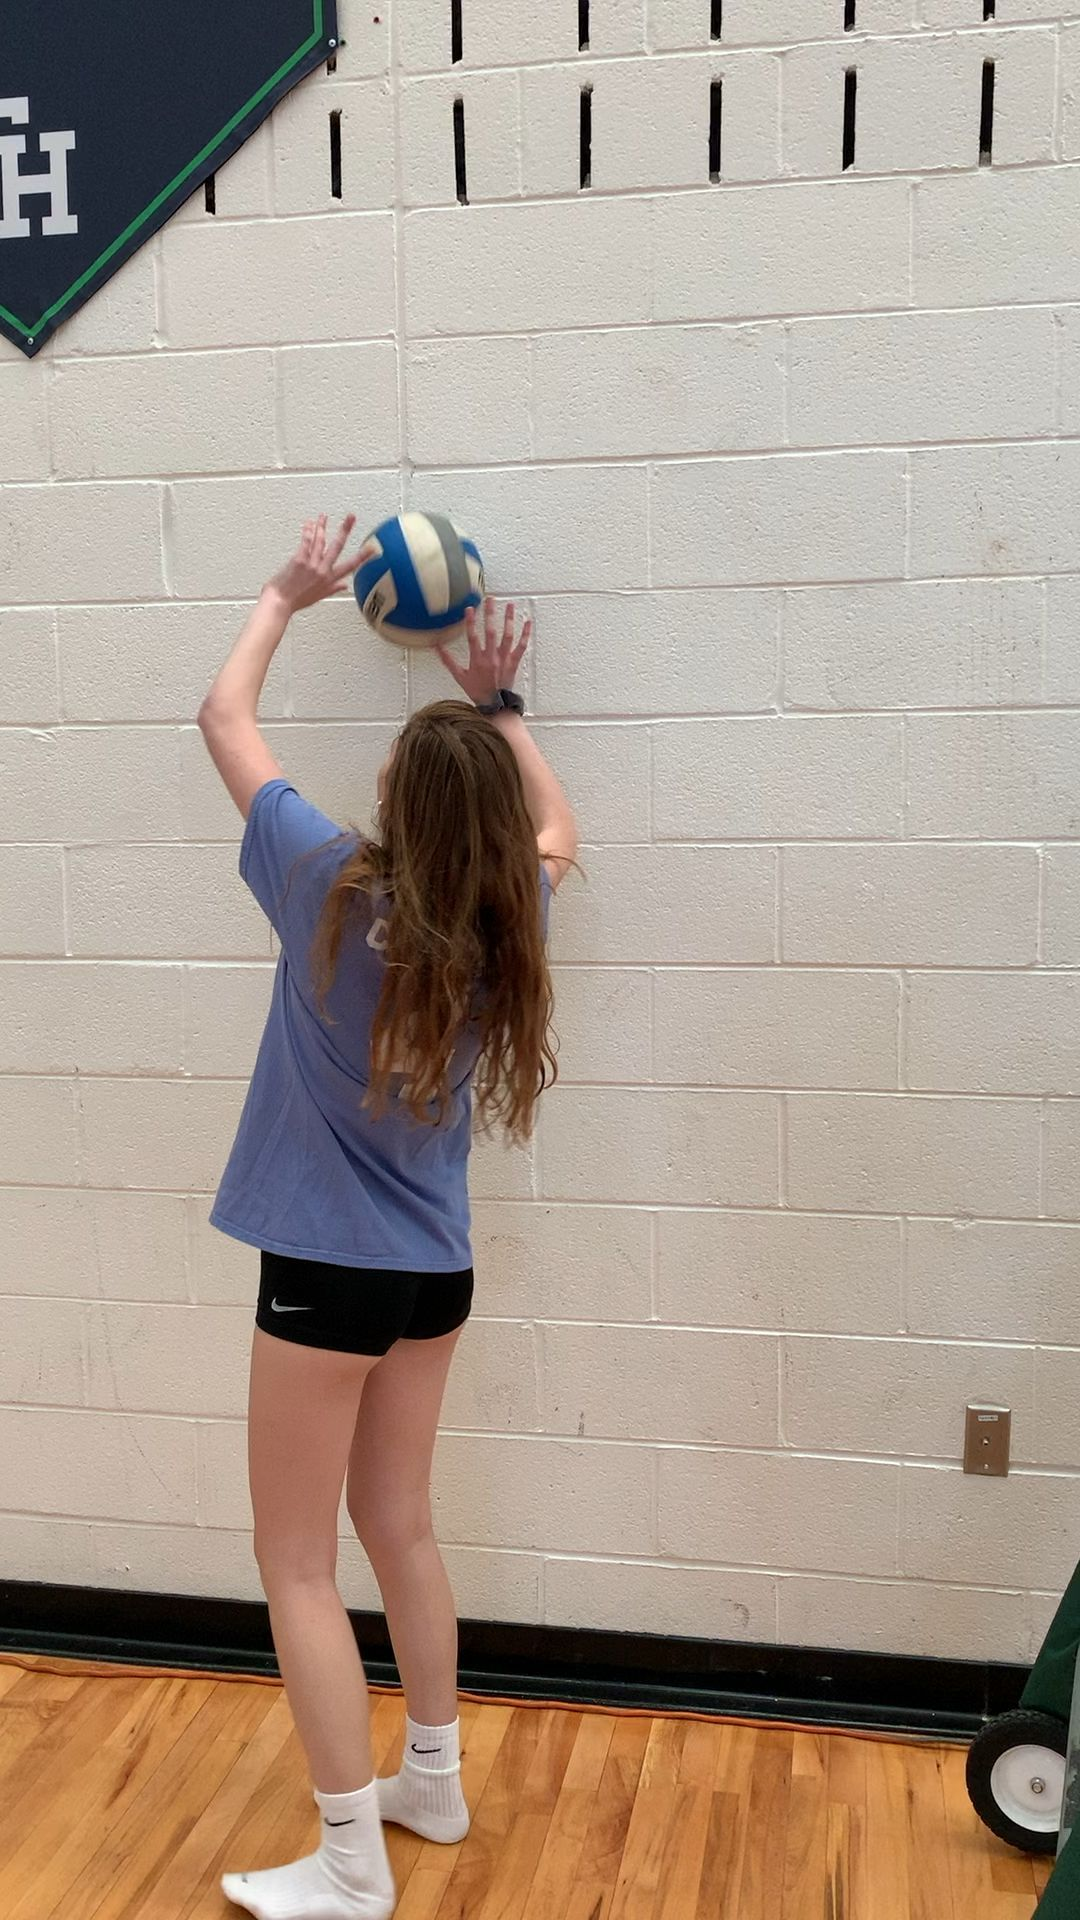 Best Volleyball Matches Wall Setting Volleyball Setting Winner Practice Sports Athlete School In 2020 Coaching Volleyball Volleyball Drills Volleyball Outfits